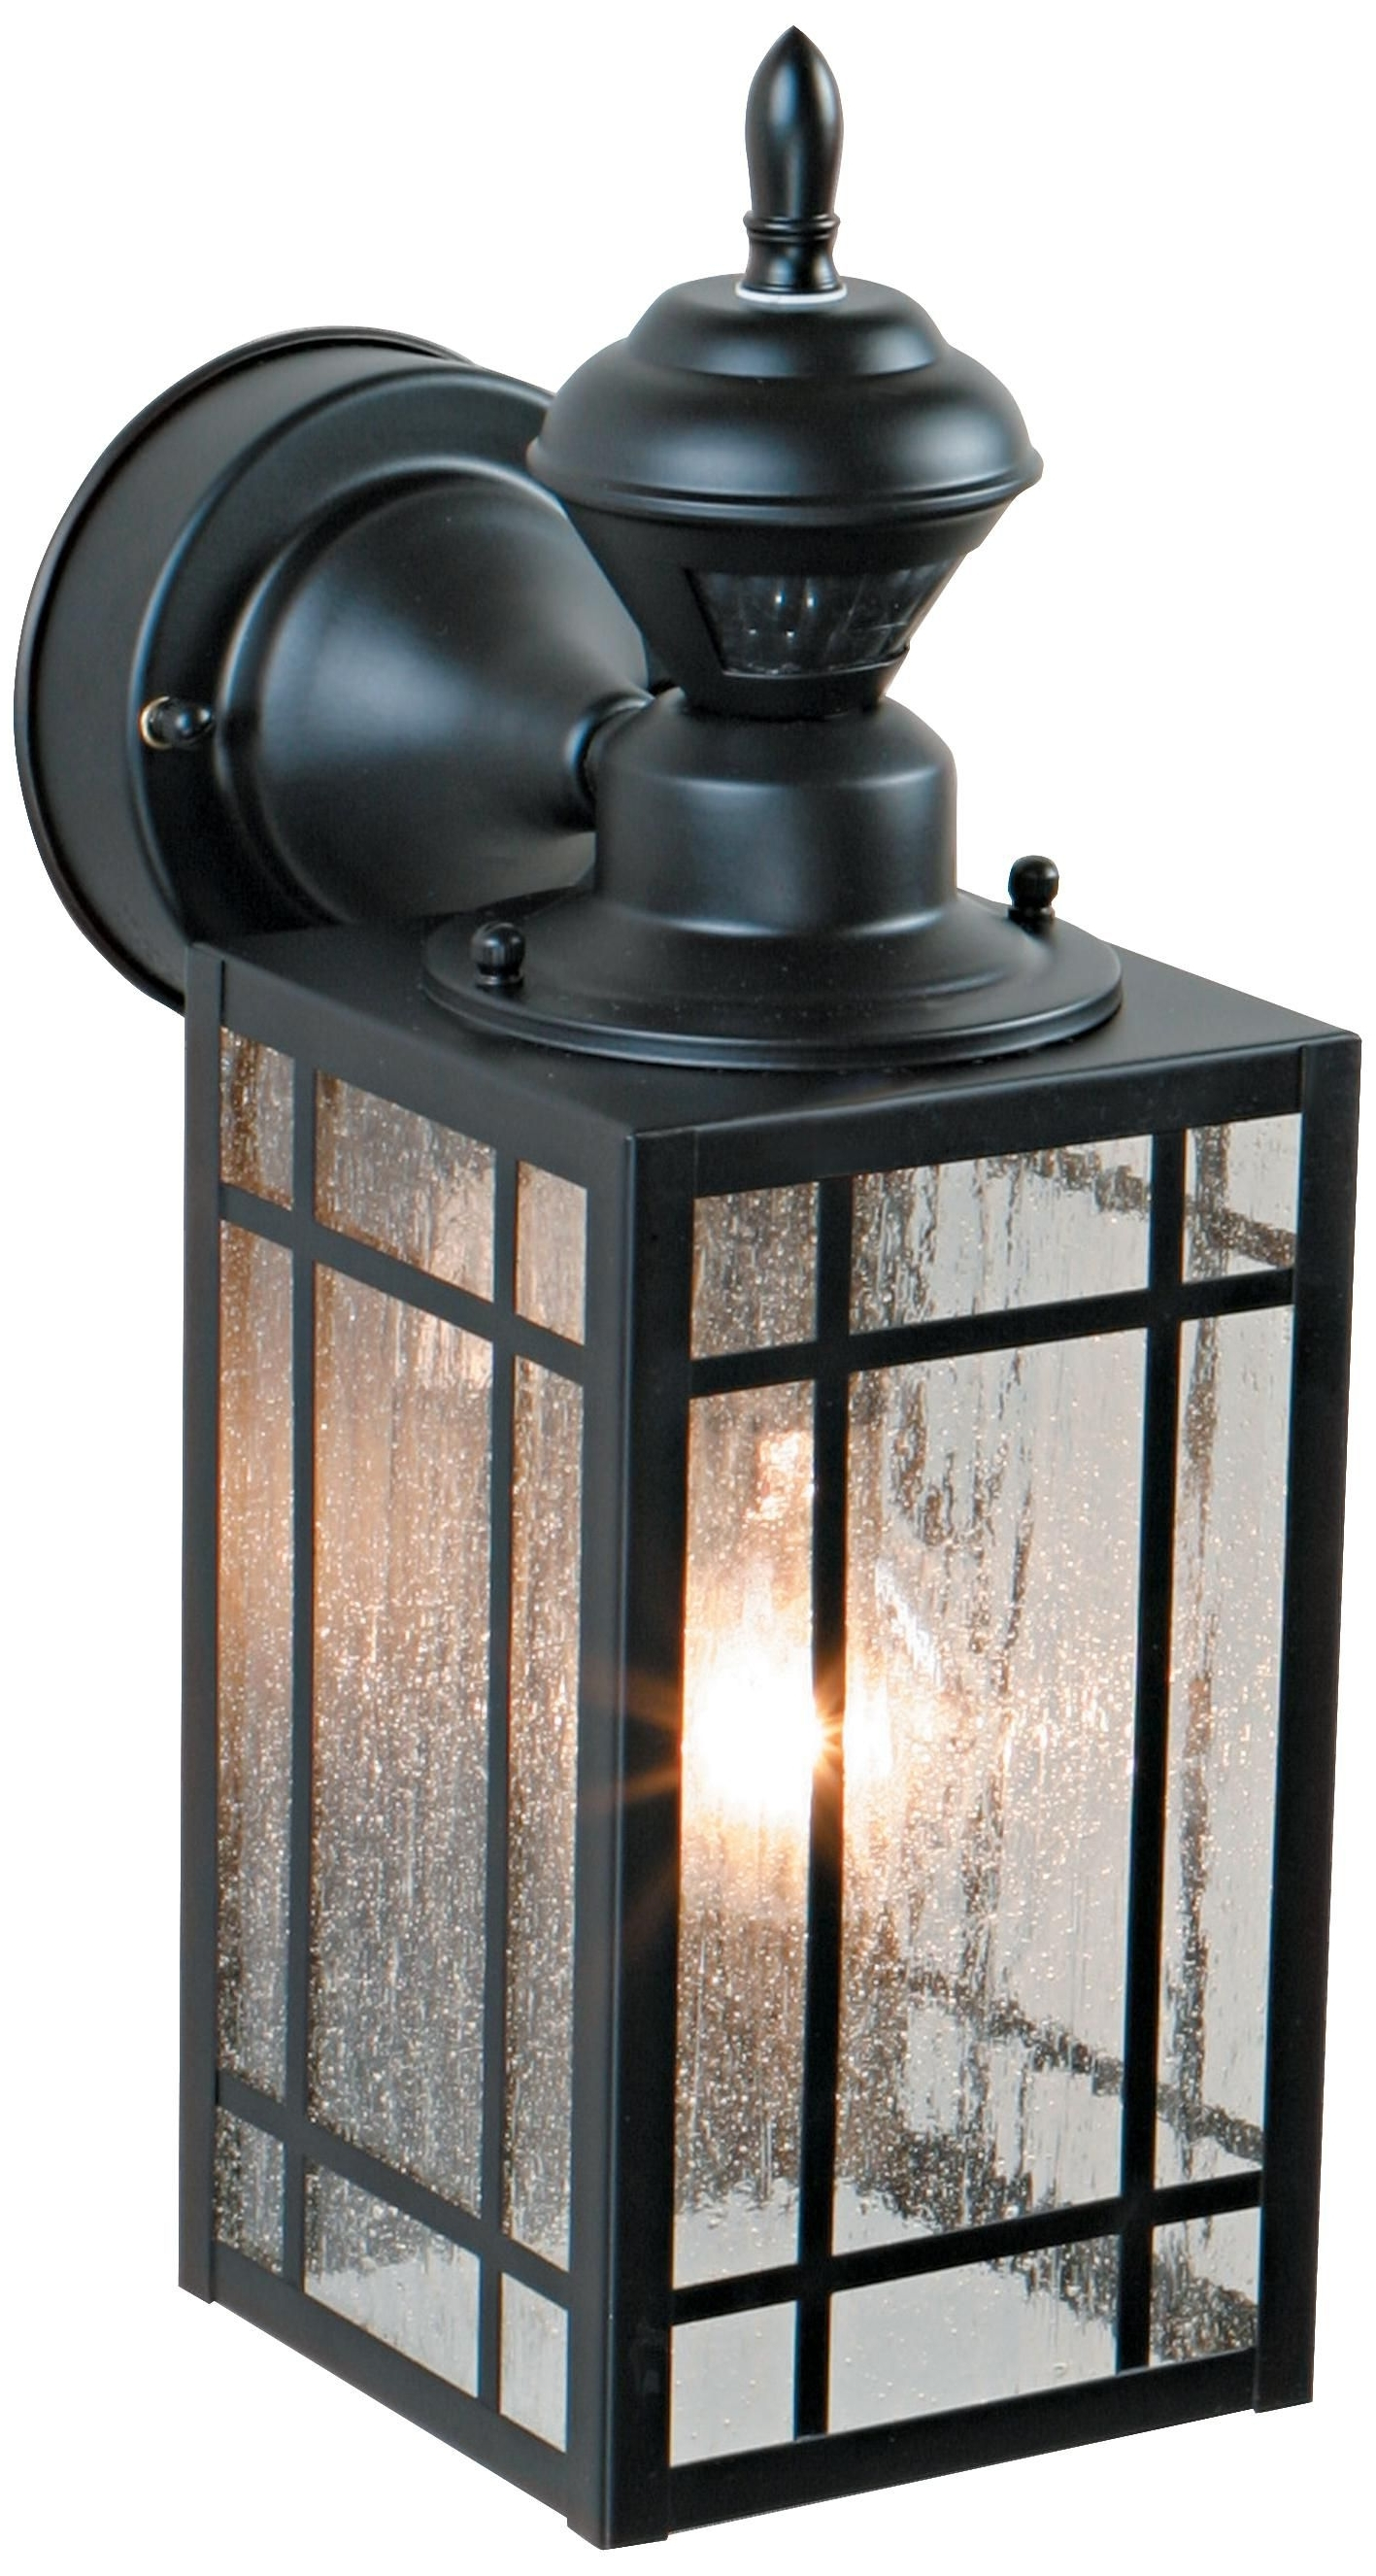 "Most Current Outdoor Motion Lanterns Regarding Point Grove 14 1/4"" High Motion Sensor Outdoor Light Hard To Find A (View 19 of 20)"